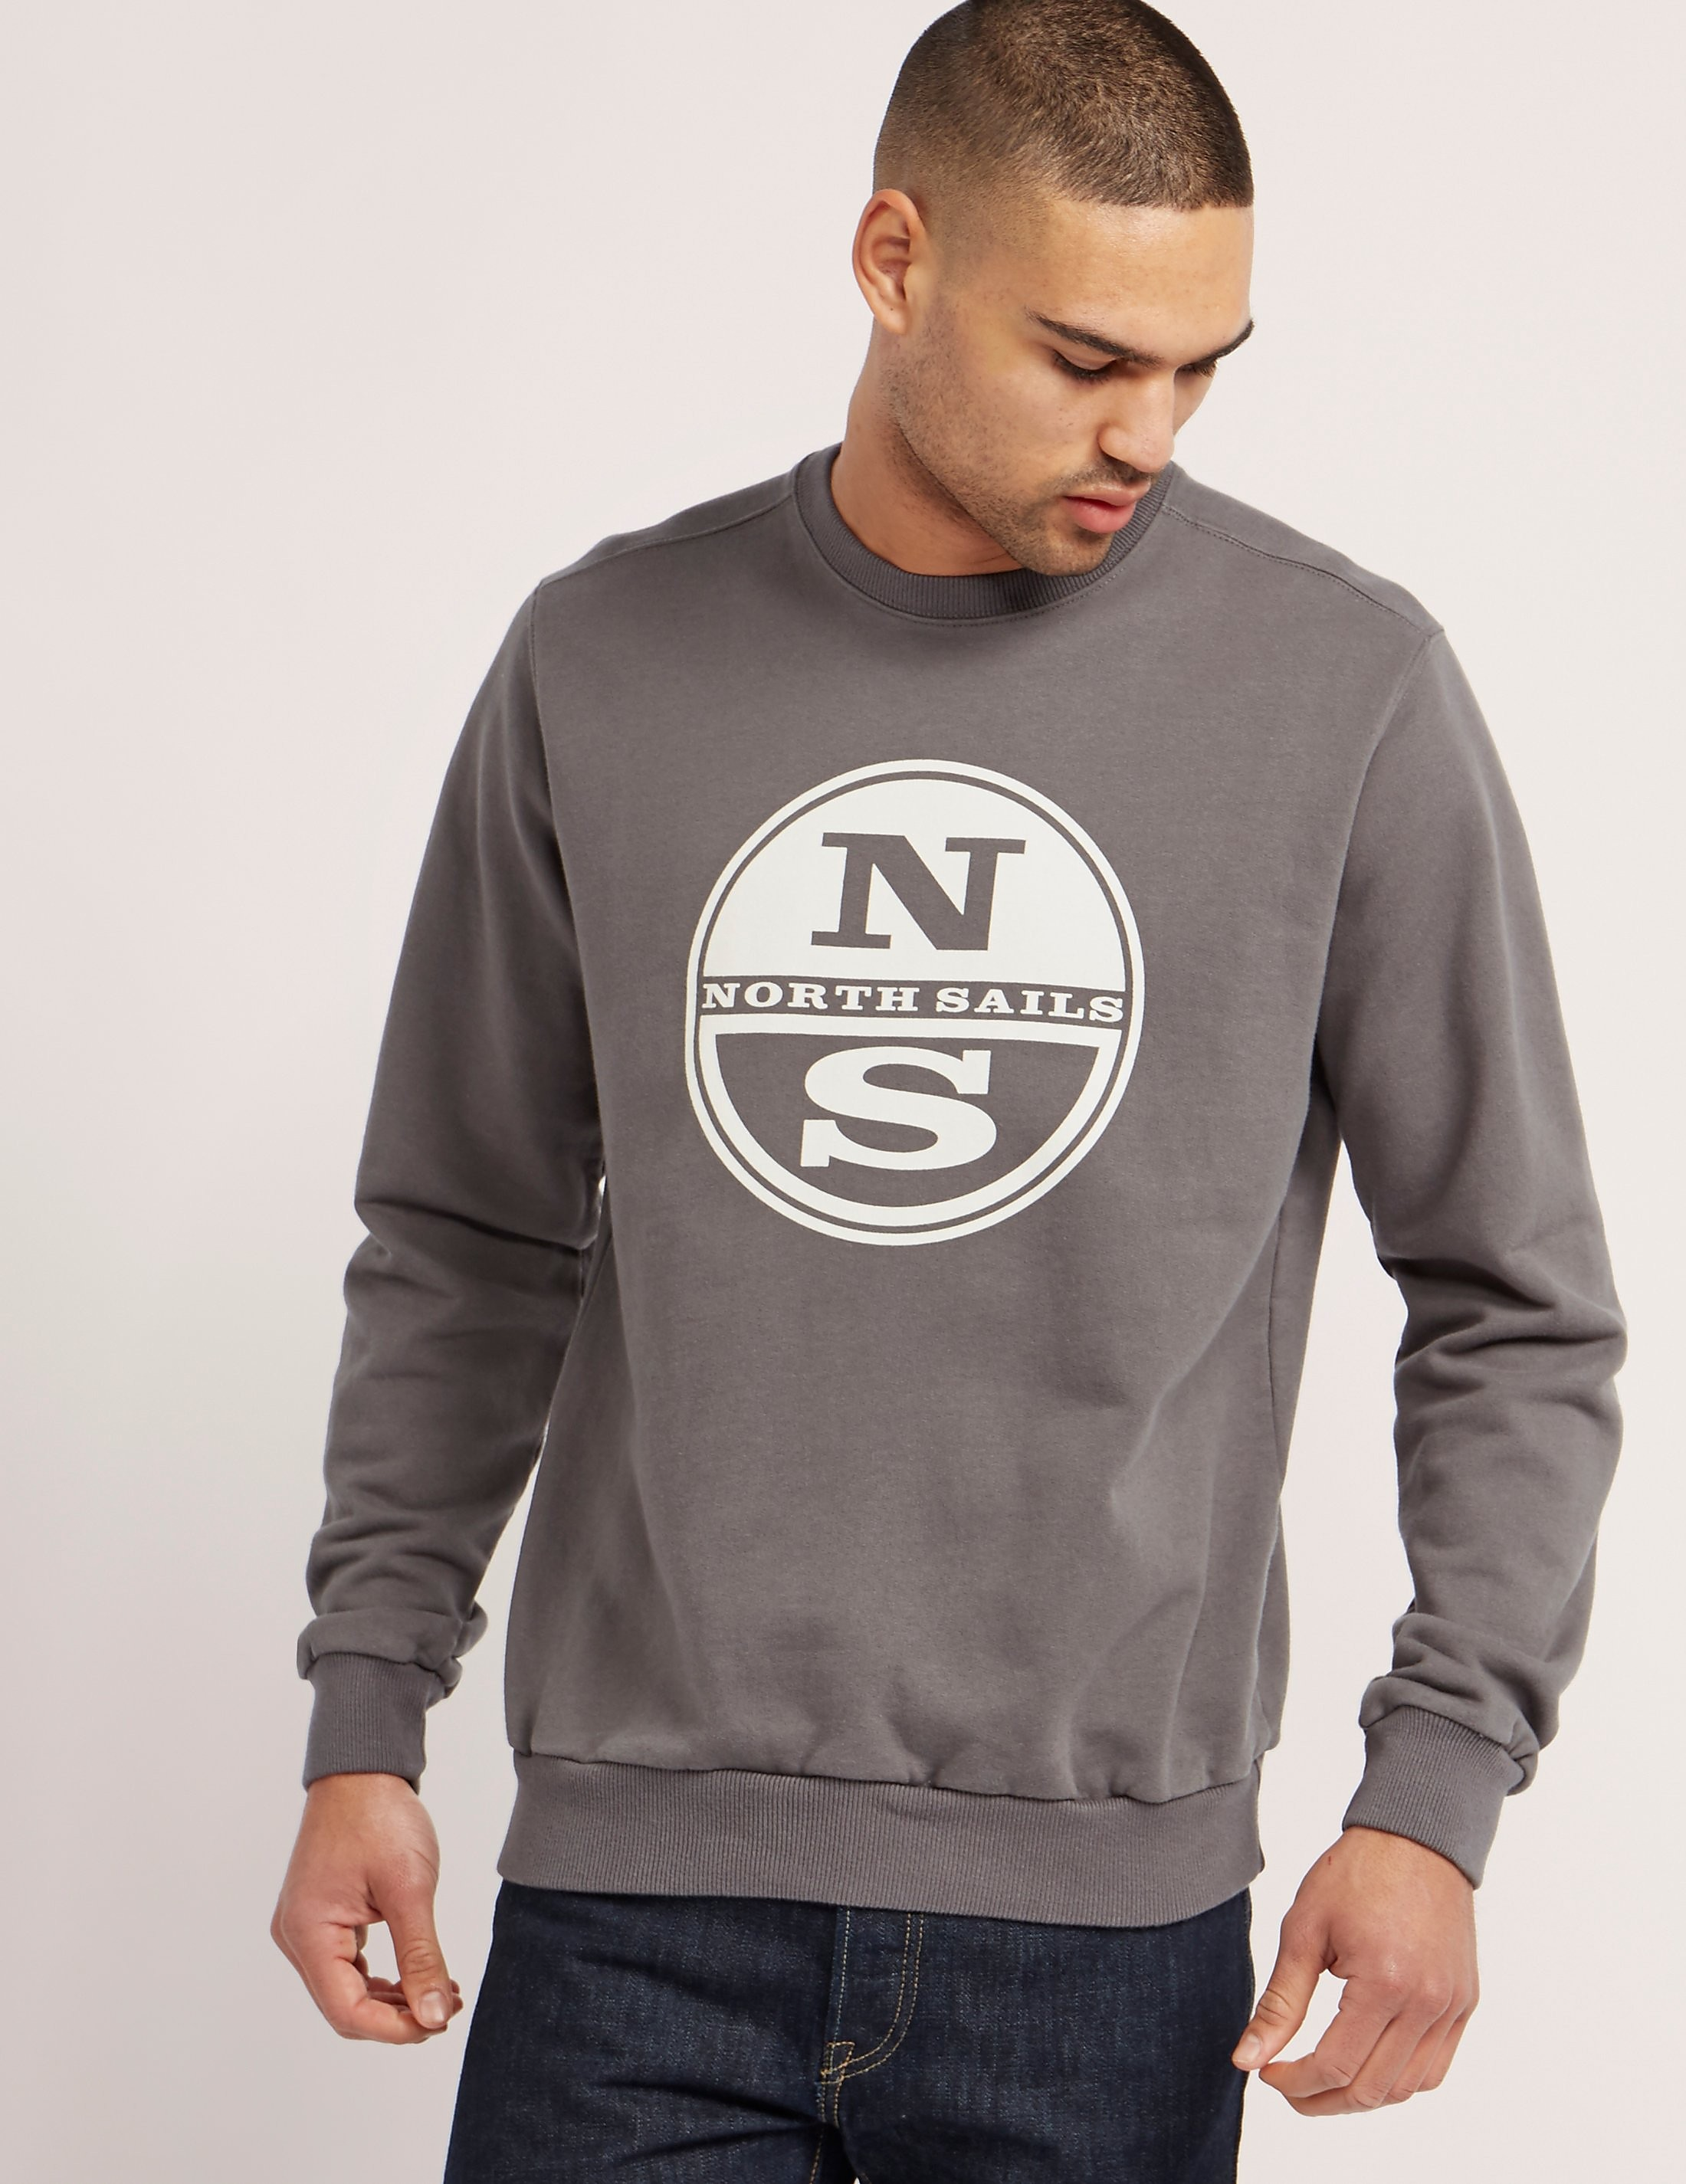 NORTH SAILS Logo Crew Sweatshirt